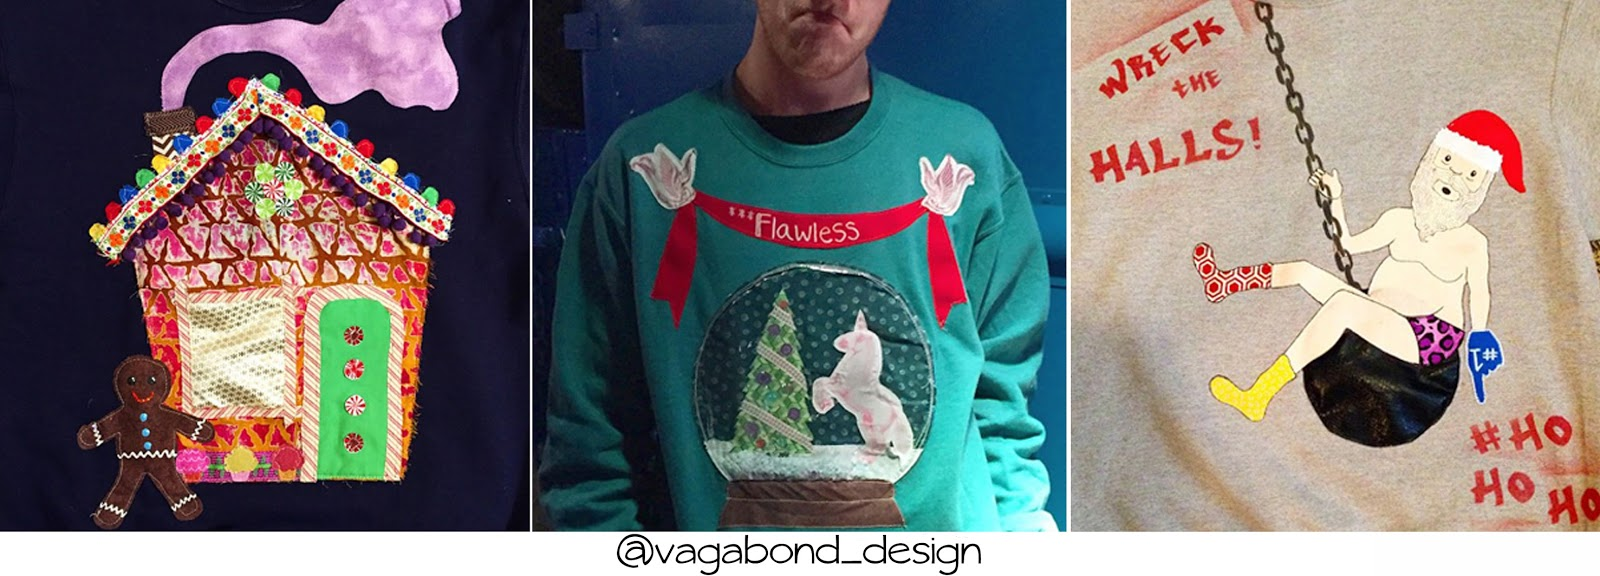 Snowstorm: Ugly Christmas Sweater Winner